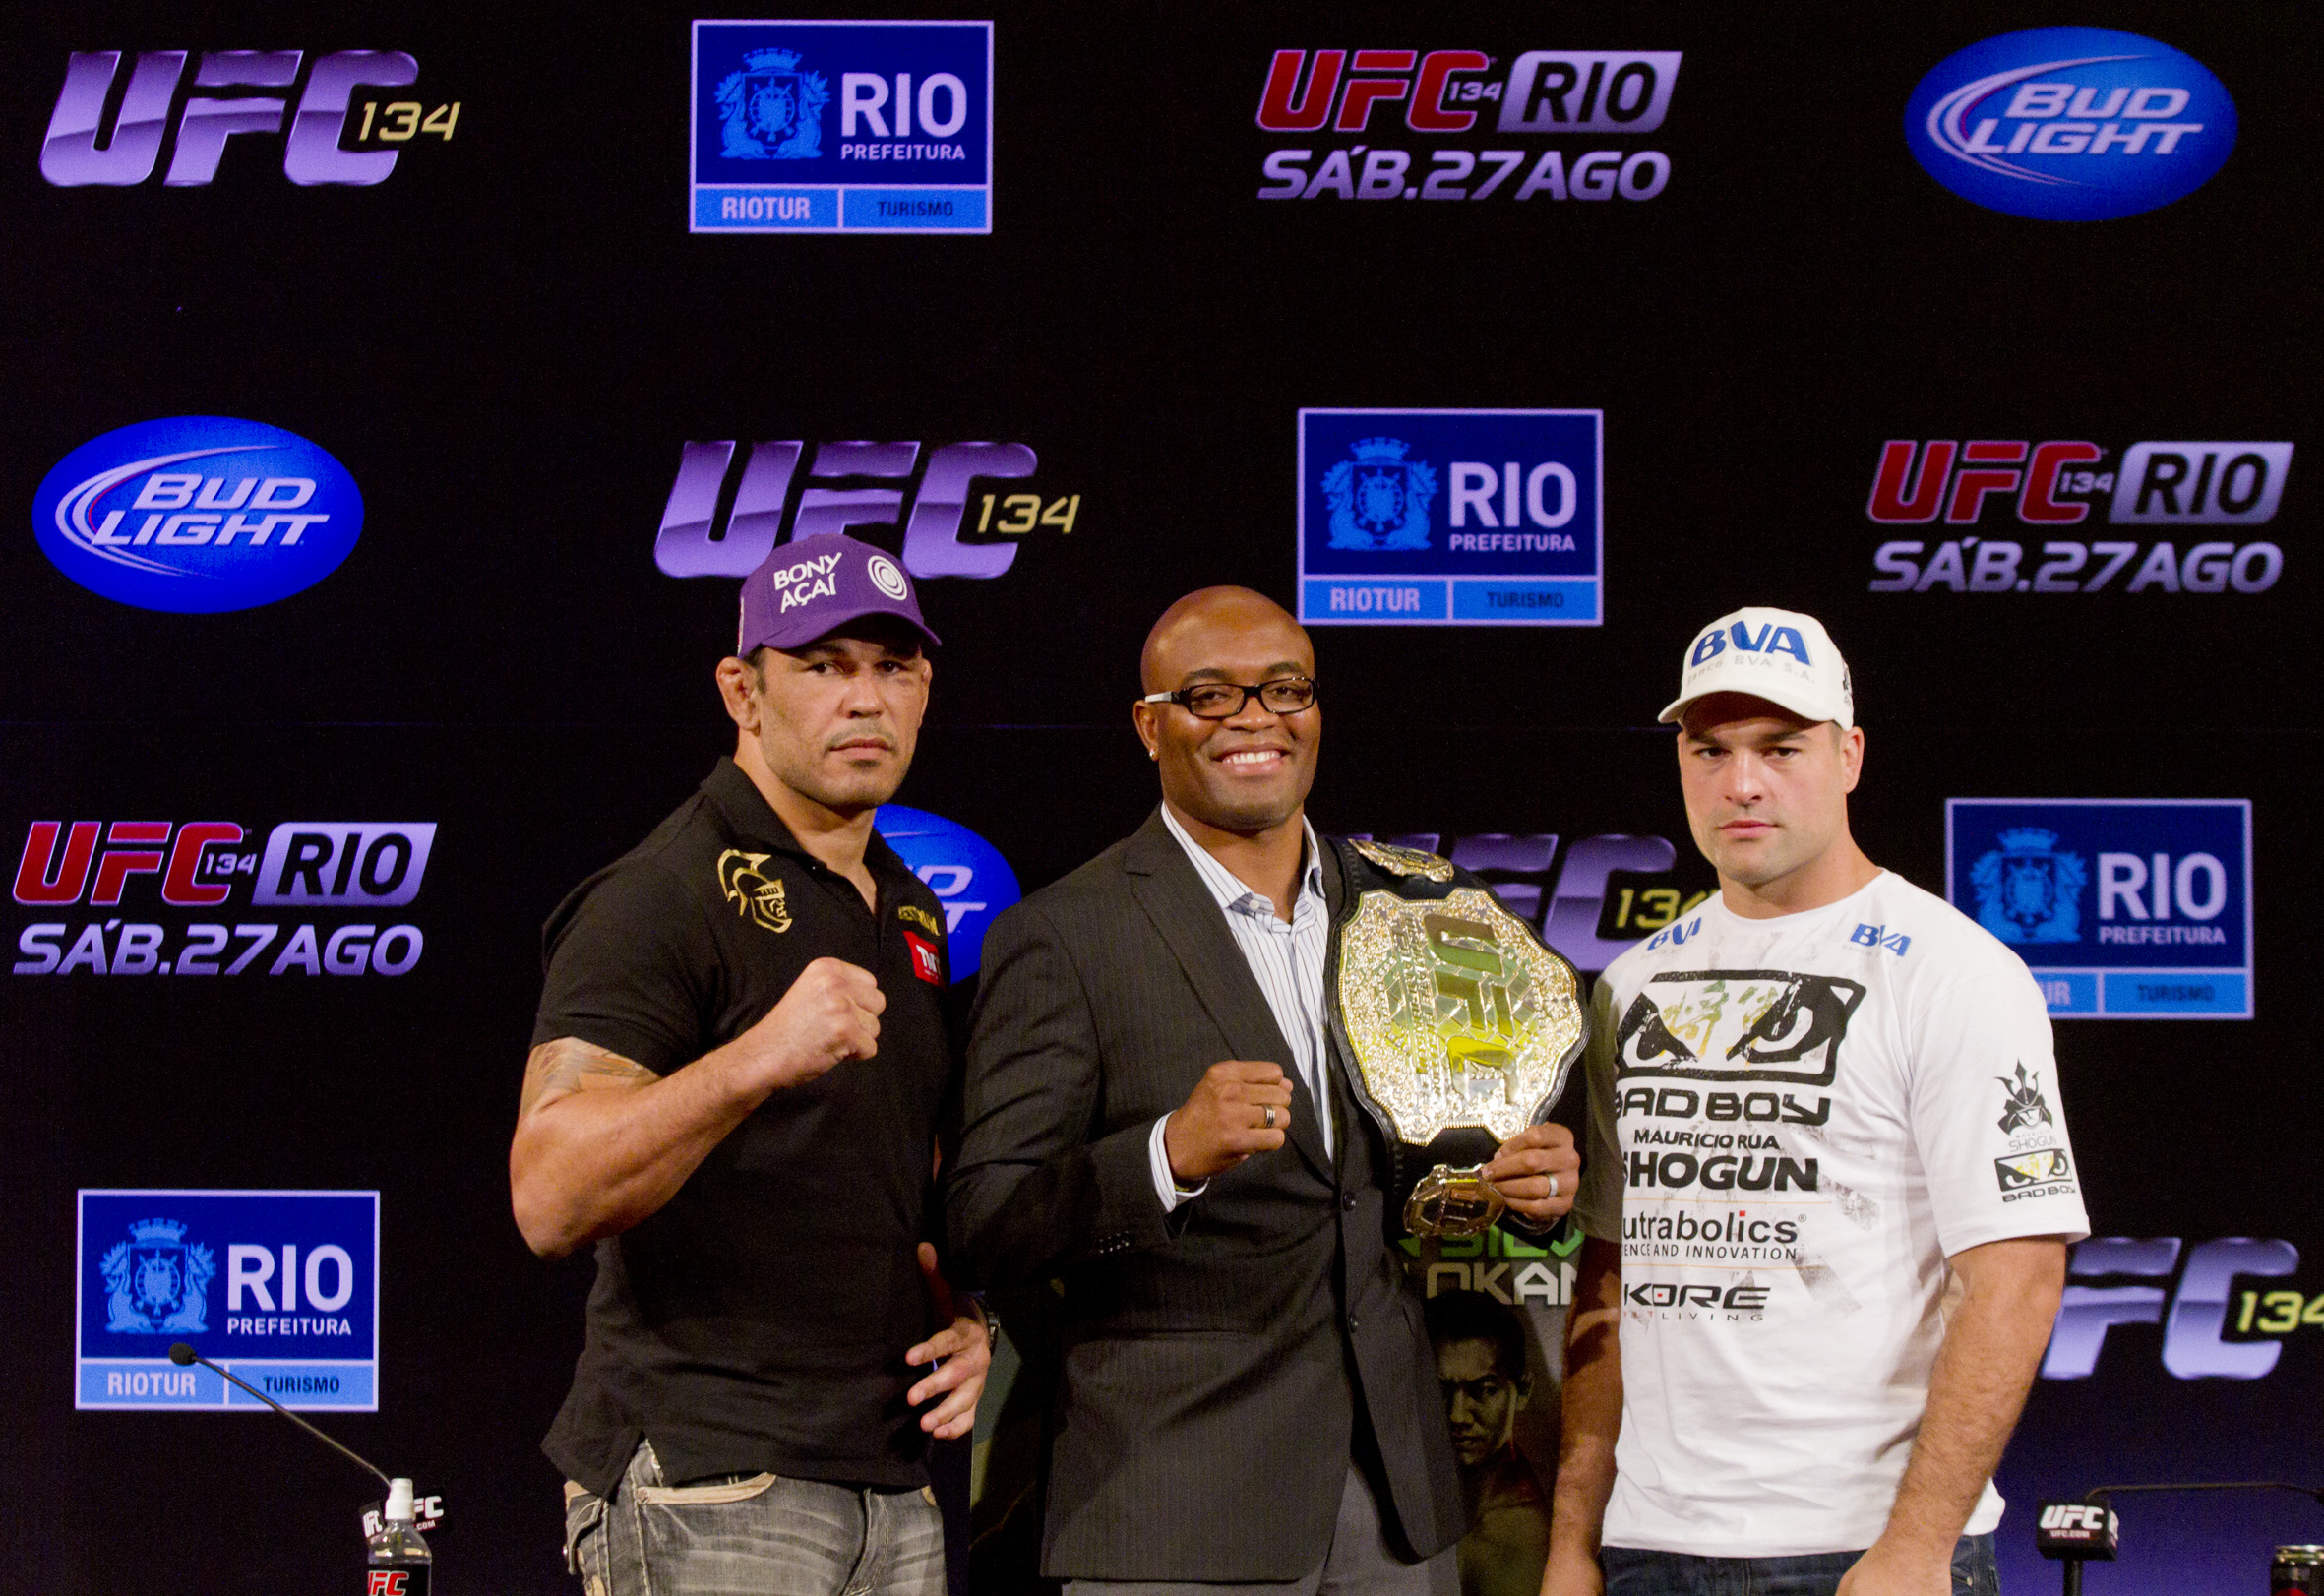 The three Brazilian fighters are ready to fight in their home country.